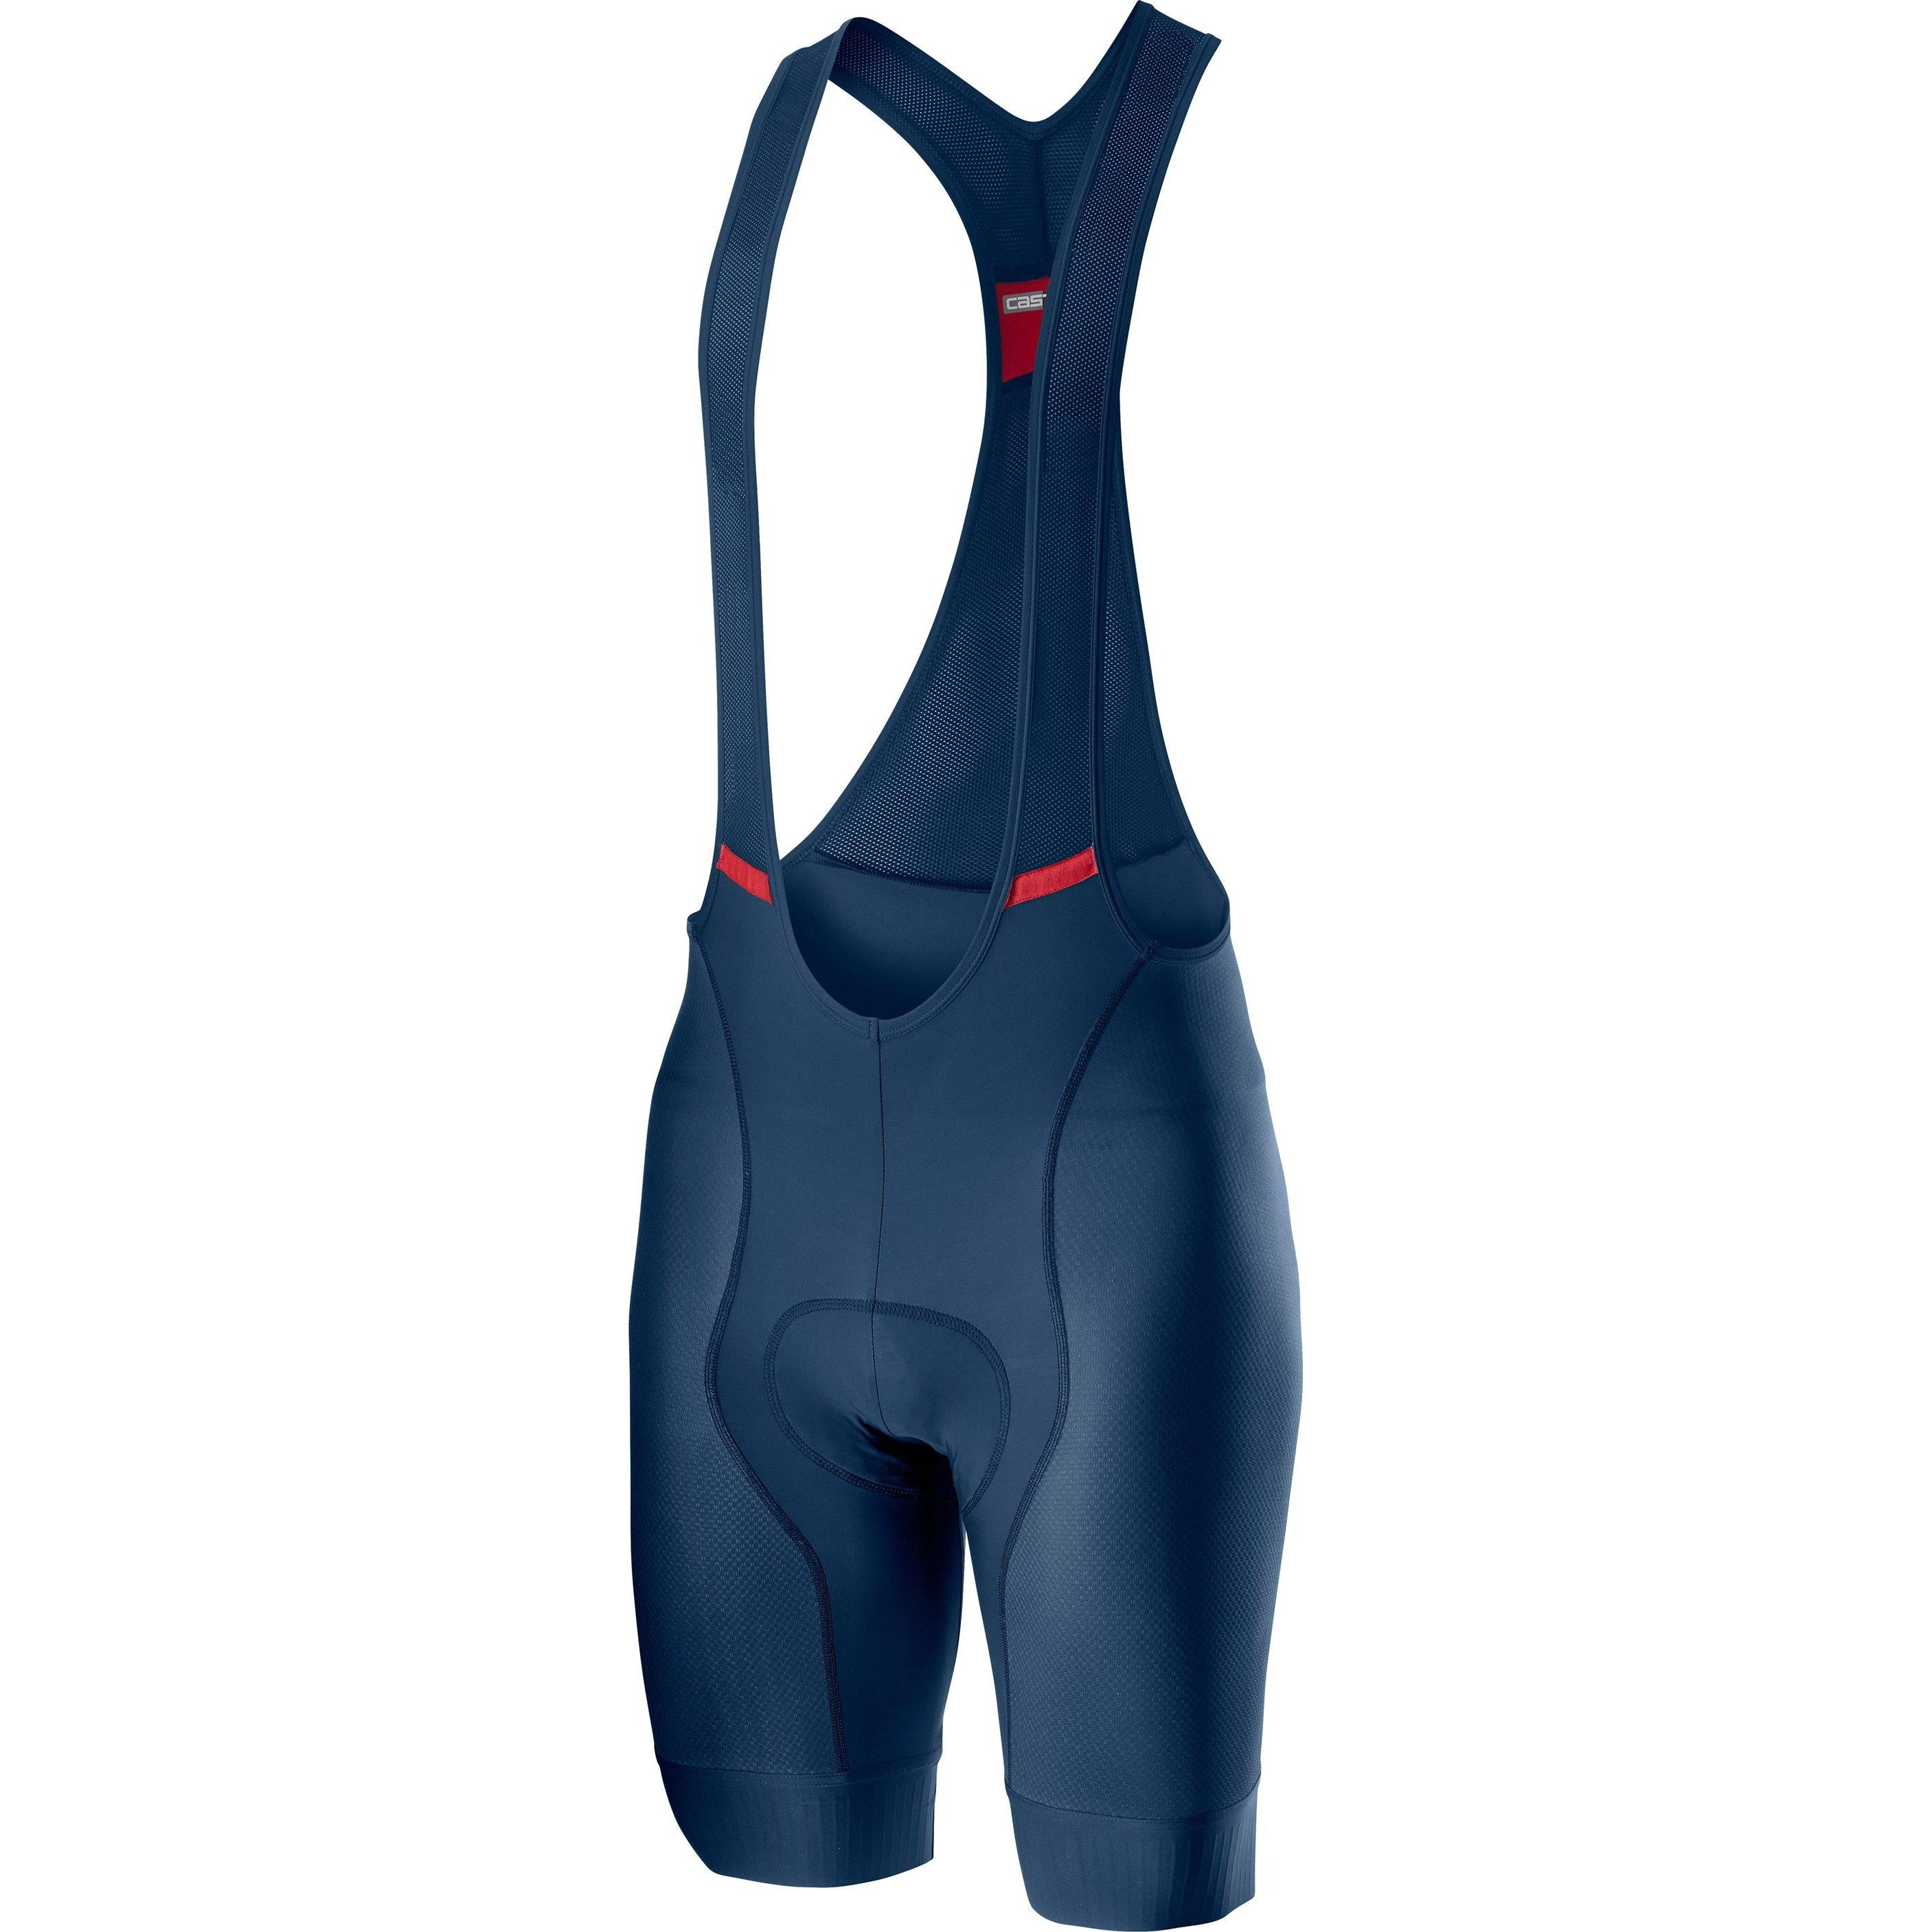 Castelli-Castelli Competizione Bib Shorts--saddleback-elite-performance-cycling